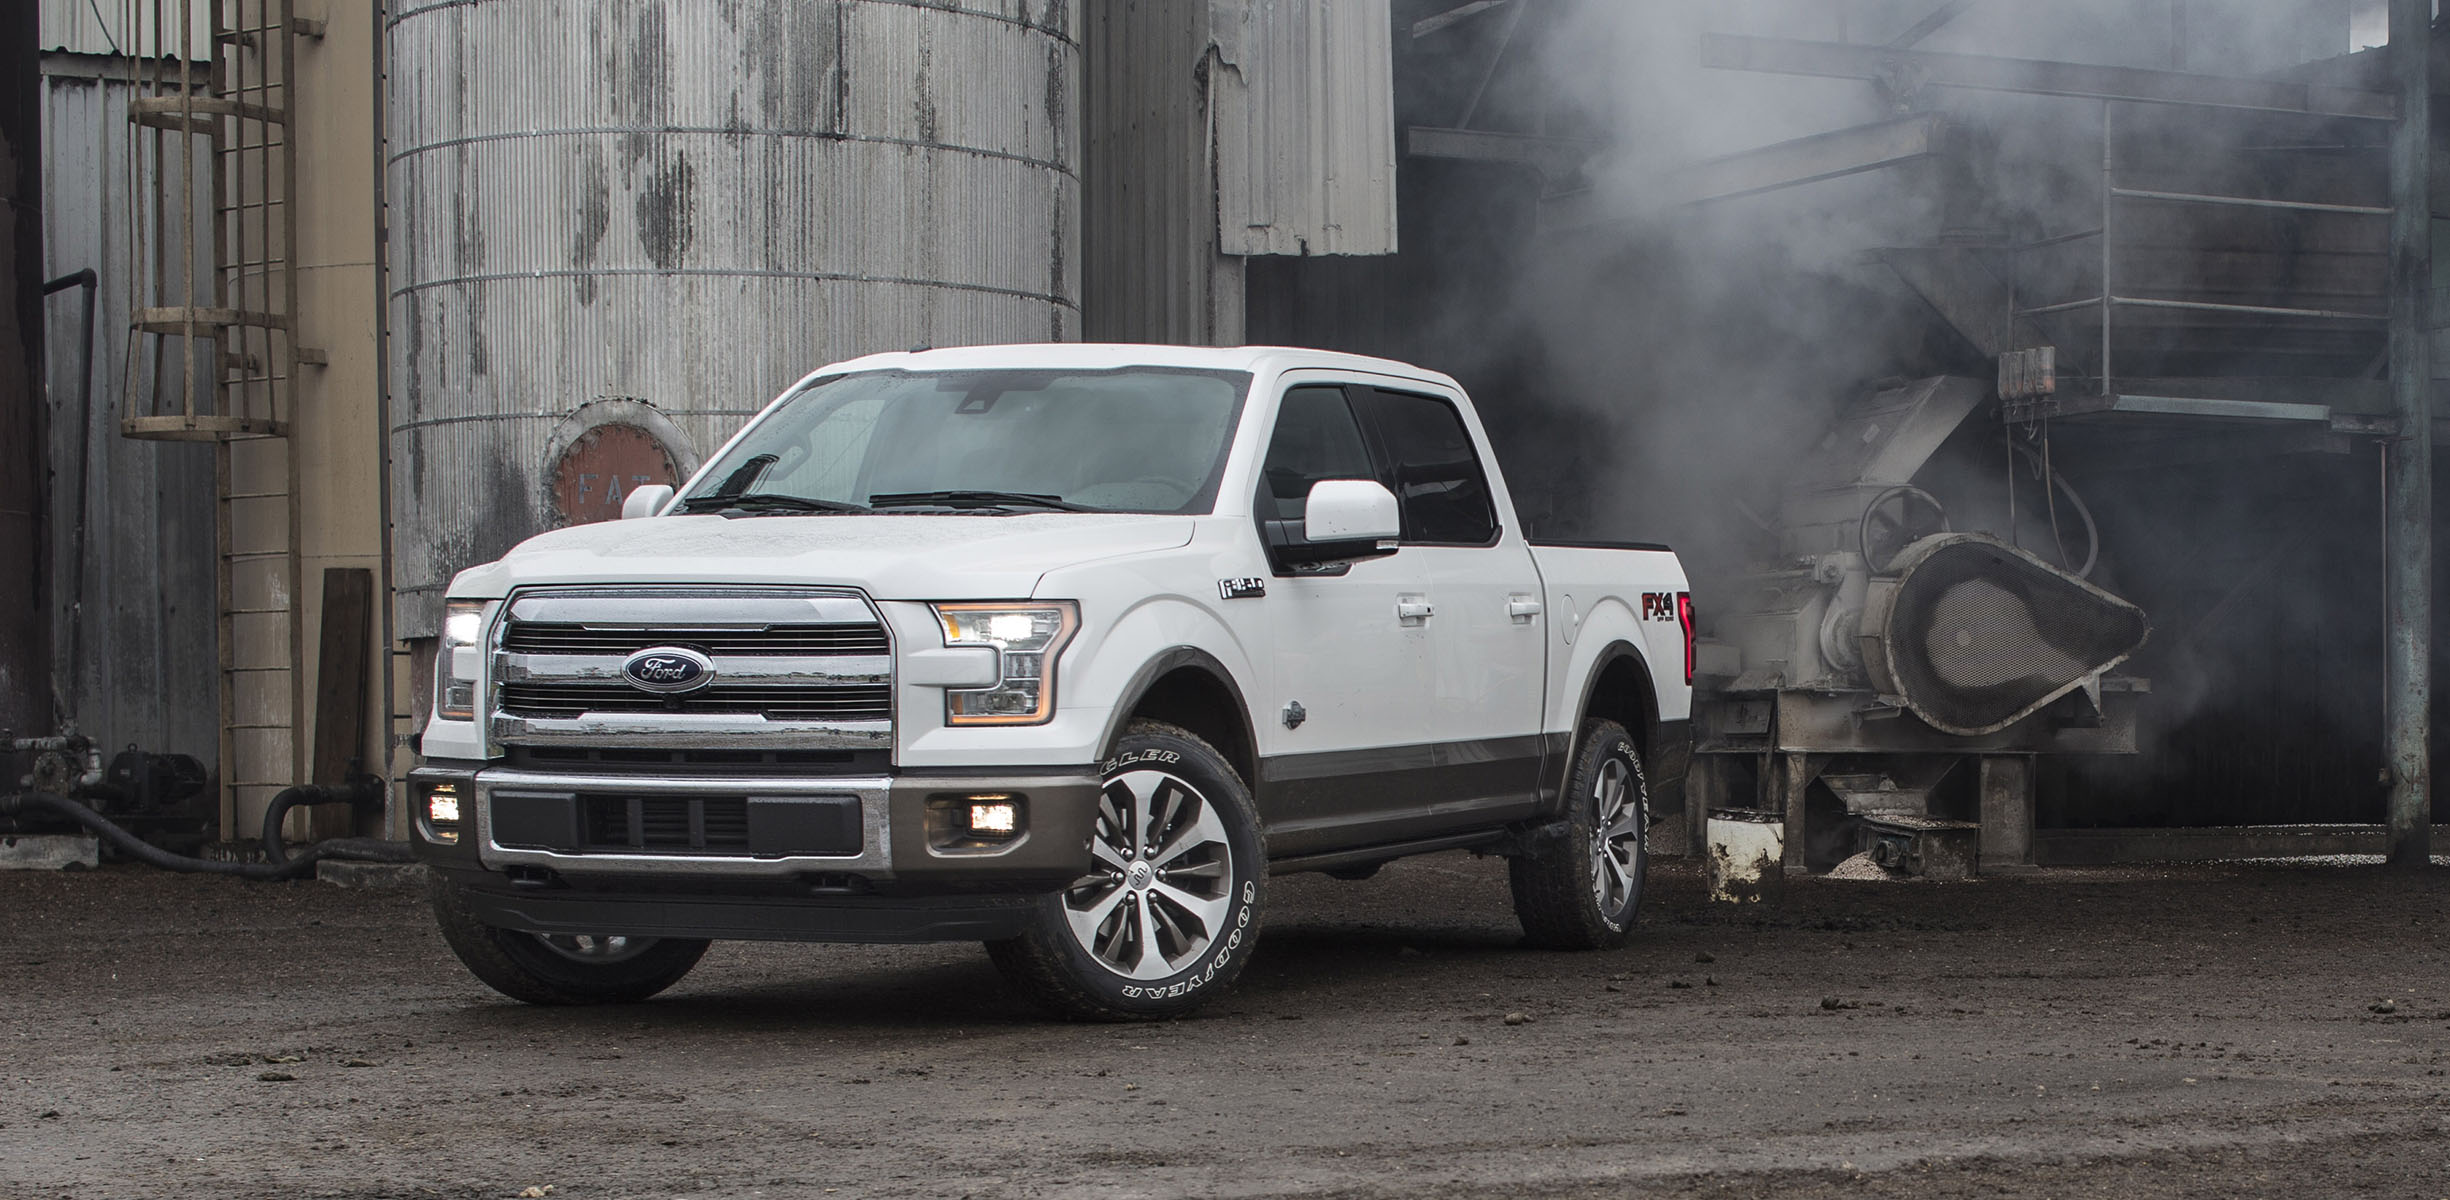 ford unlikely to start making aluminium cars despite f 150 move photos. Black Bedroom Furniture Sets. Home Design Ideas